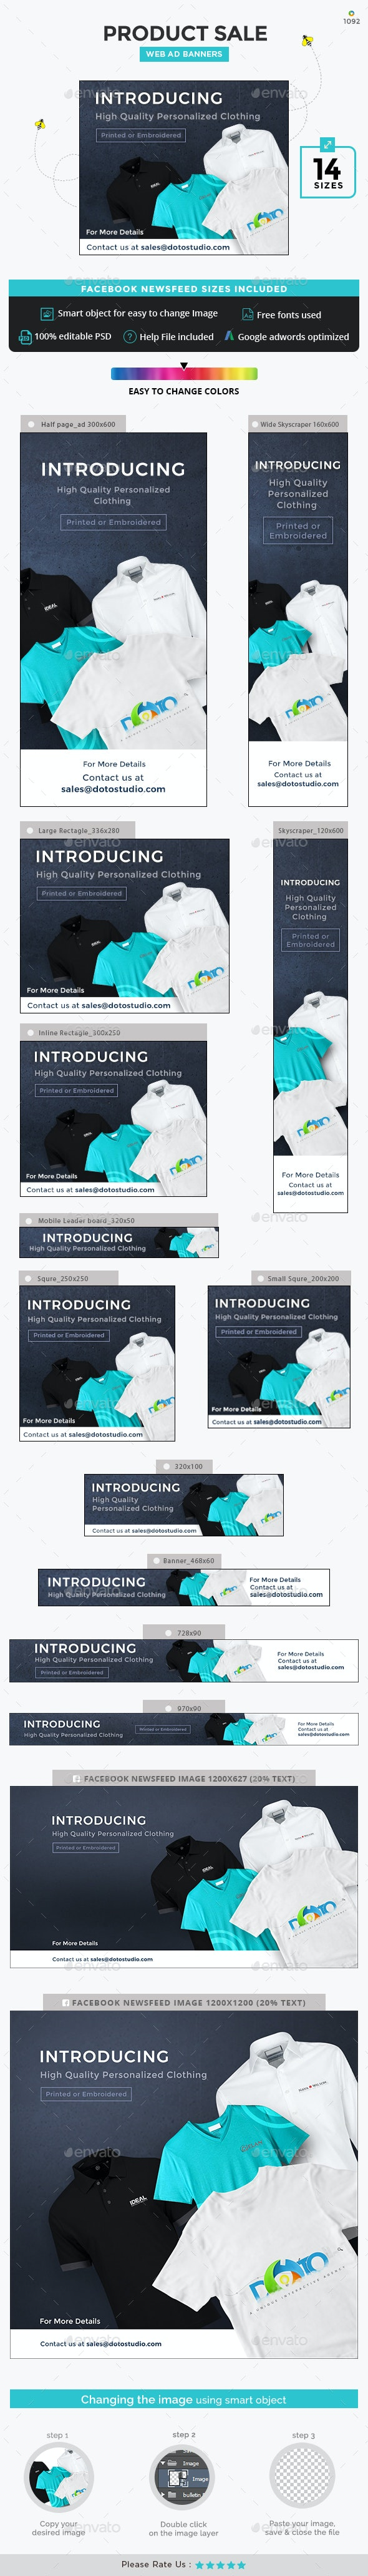 Product Sale Banner Set - Banners & Ads Web Elements